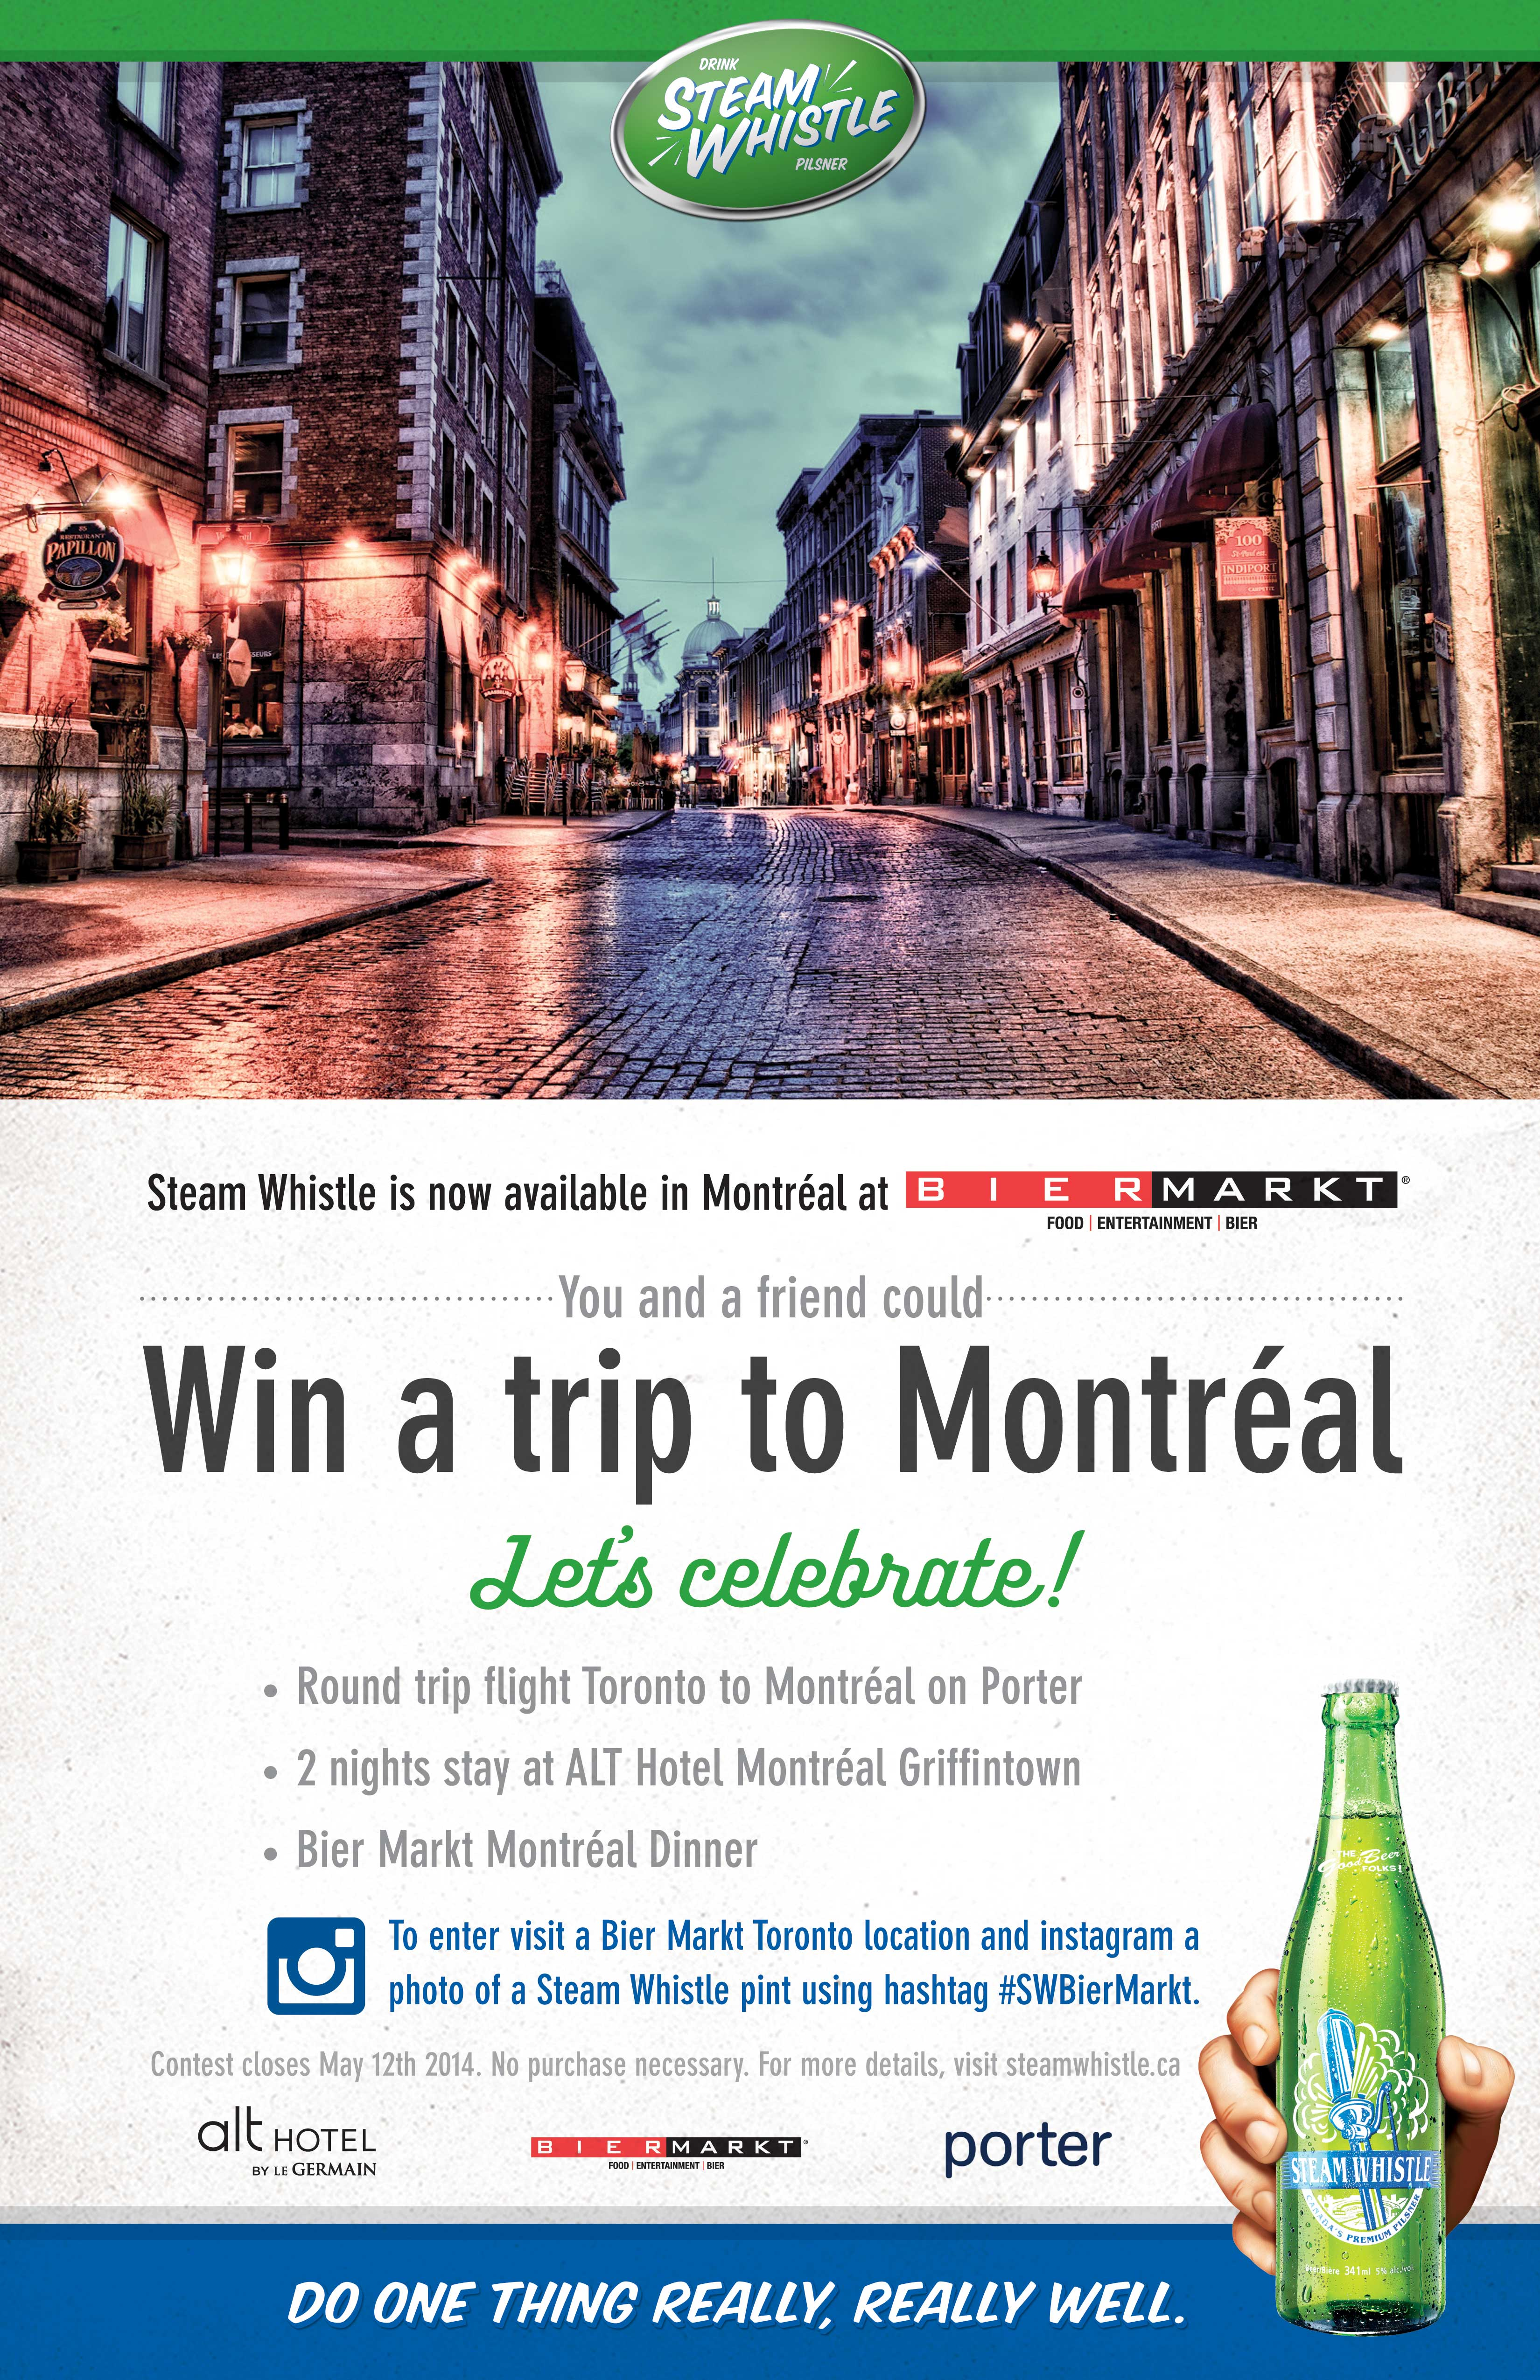 Instagram a Steam Whistle pint at Bier Markt and win a